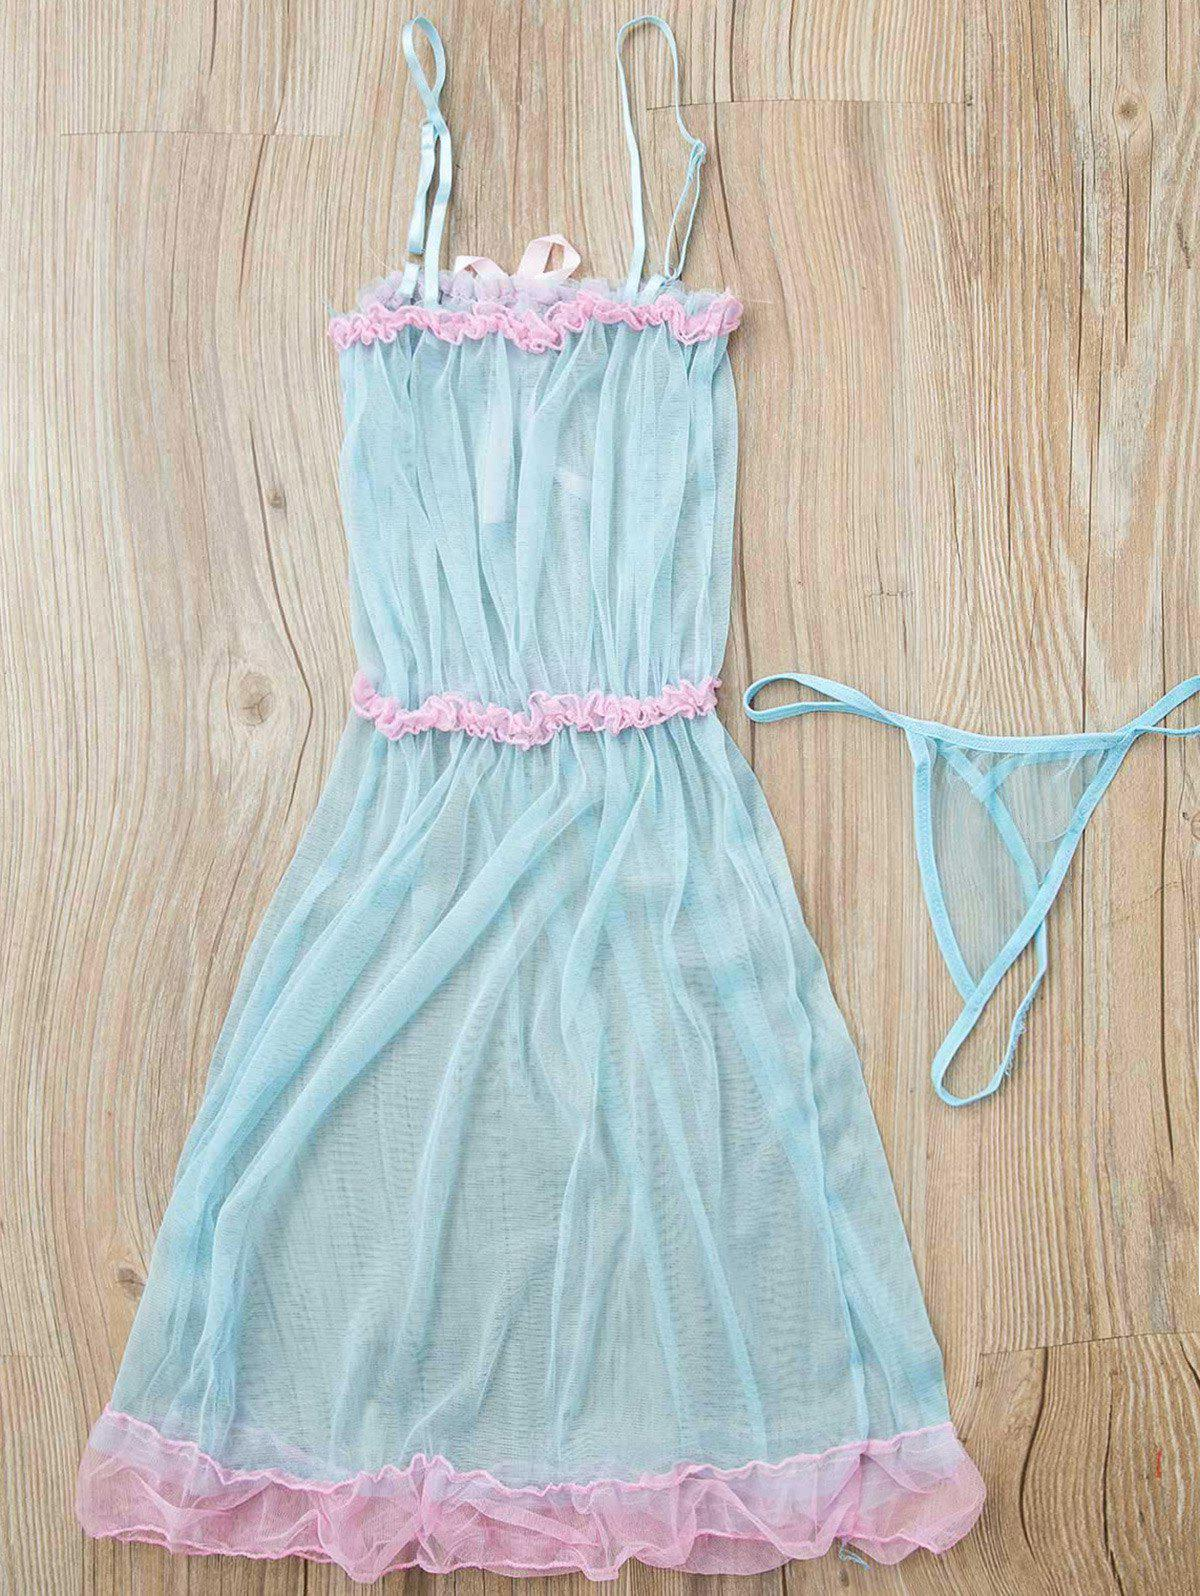 Charming Layered Ruffles Lace Hem Dress For Women - WATER BLUE ONE SIZE